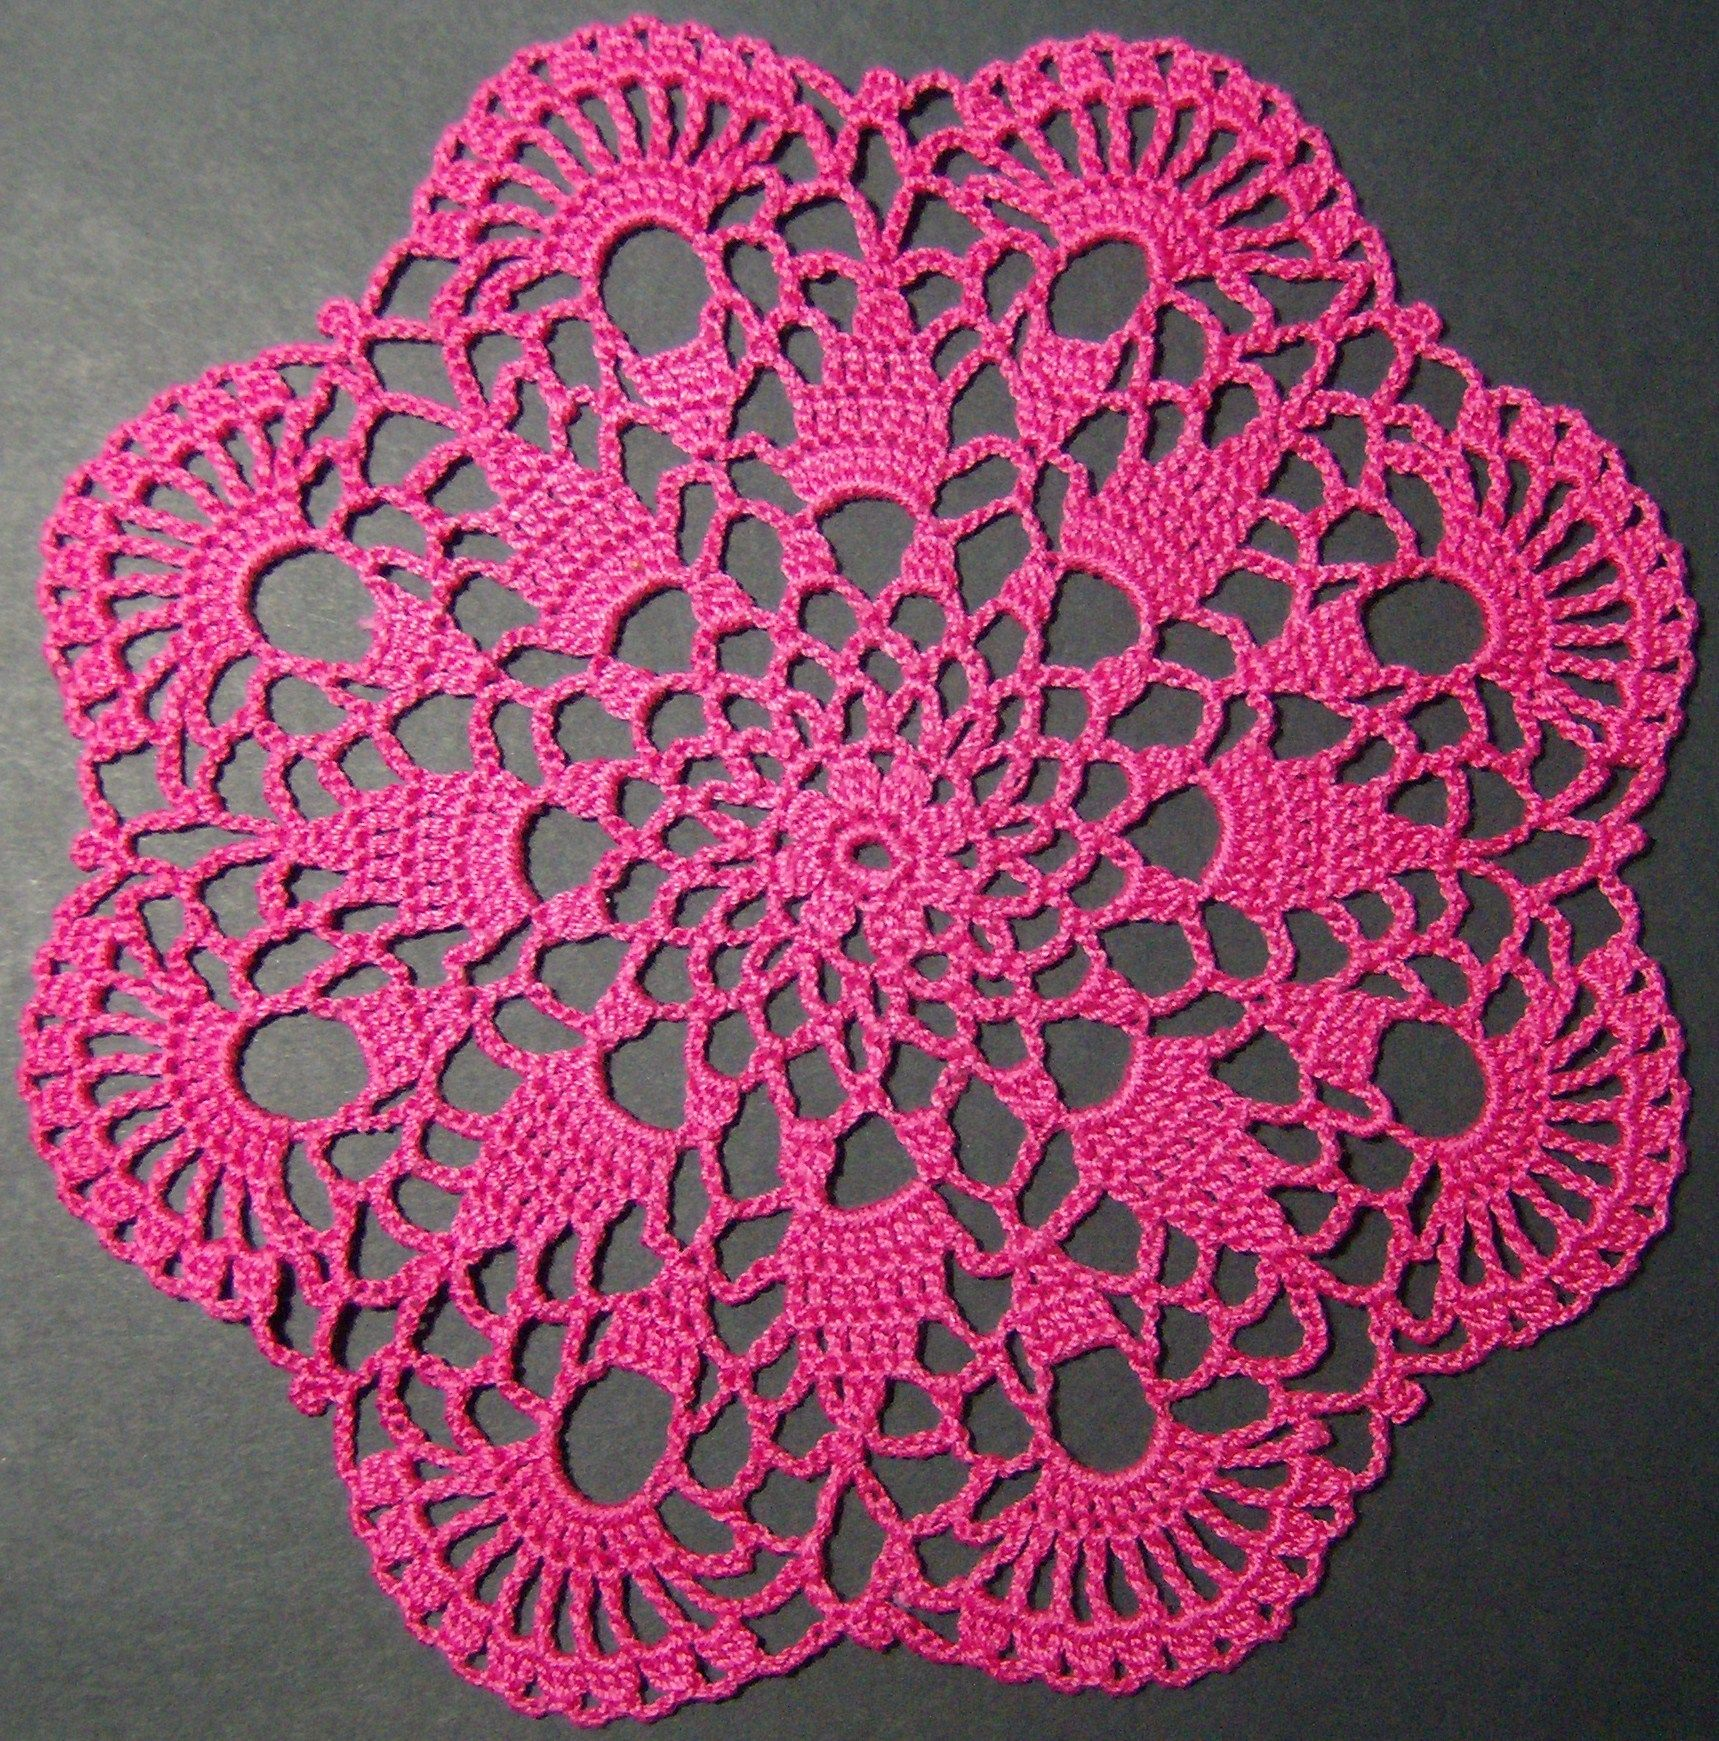 Crochet doily crochet doilies ive made pinterest crochet easy doily patterns for beginners crochet petite spiral pineapple doily pattern bankloansurffo Gallery